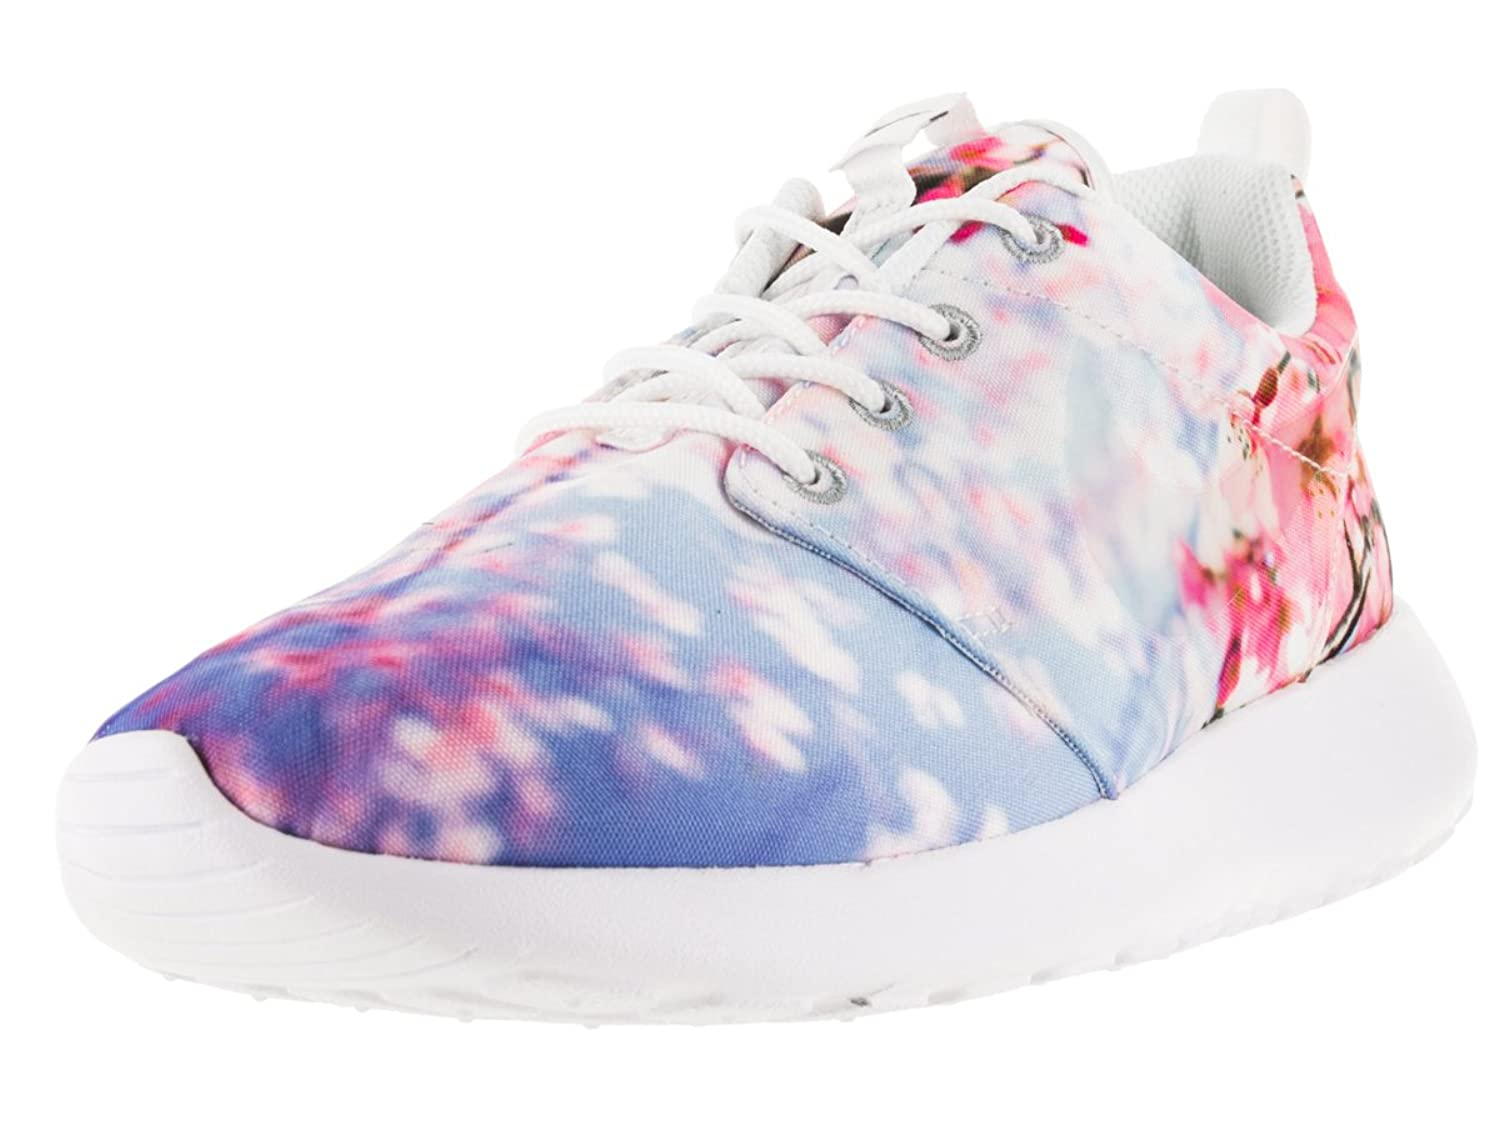 uncur Nike Wmns Roshe One Cherry Bls, Women\'s Trainers: Amazon.co.uk